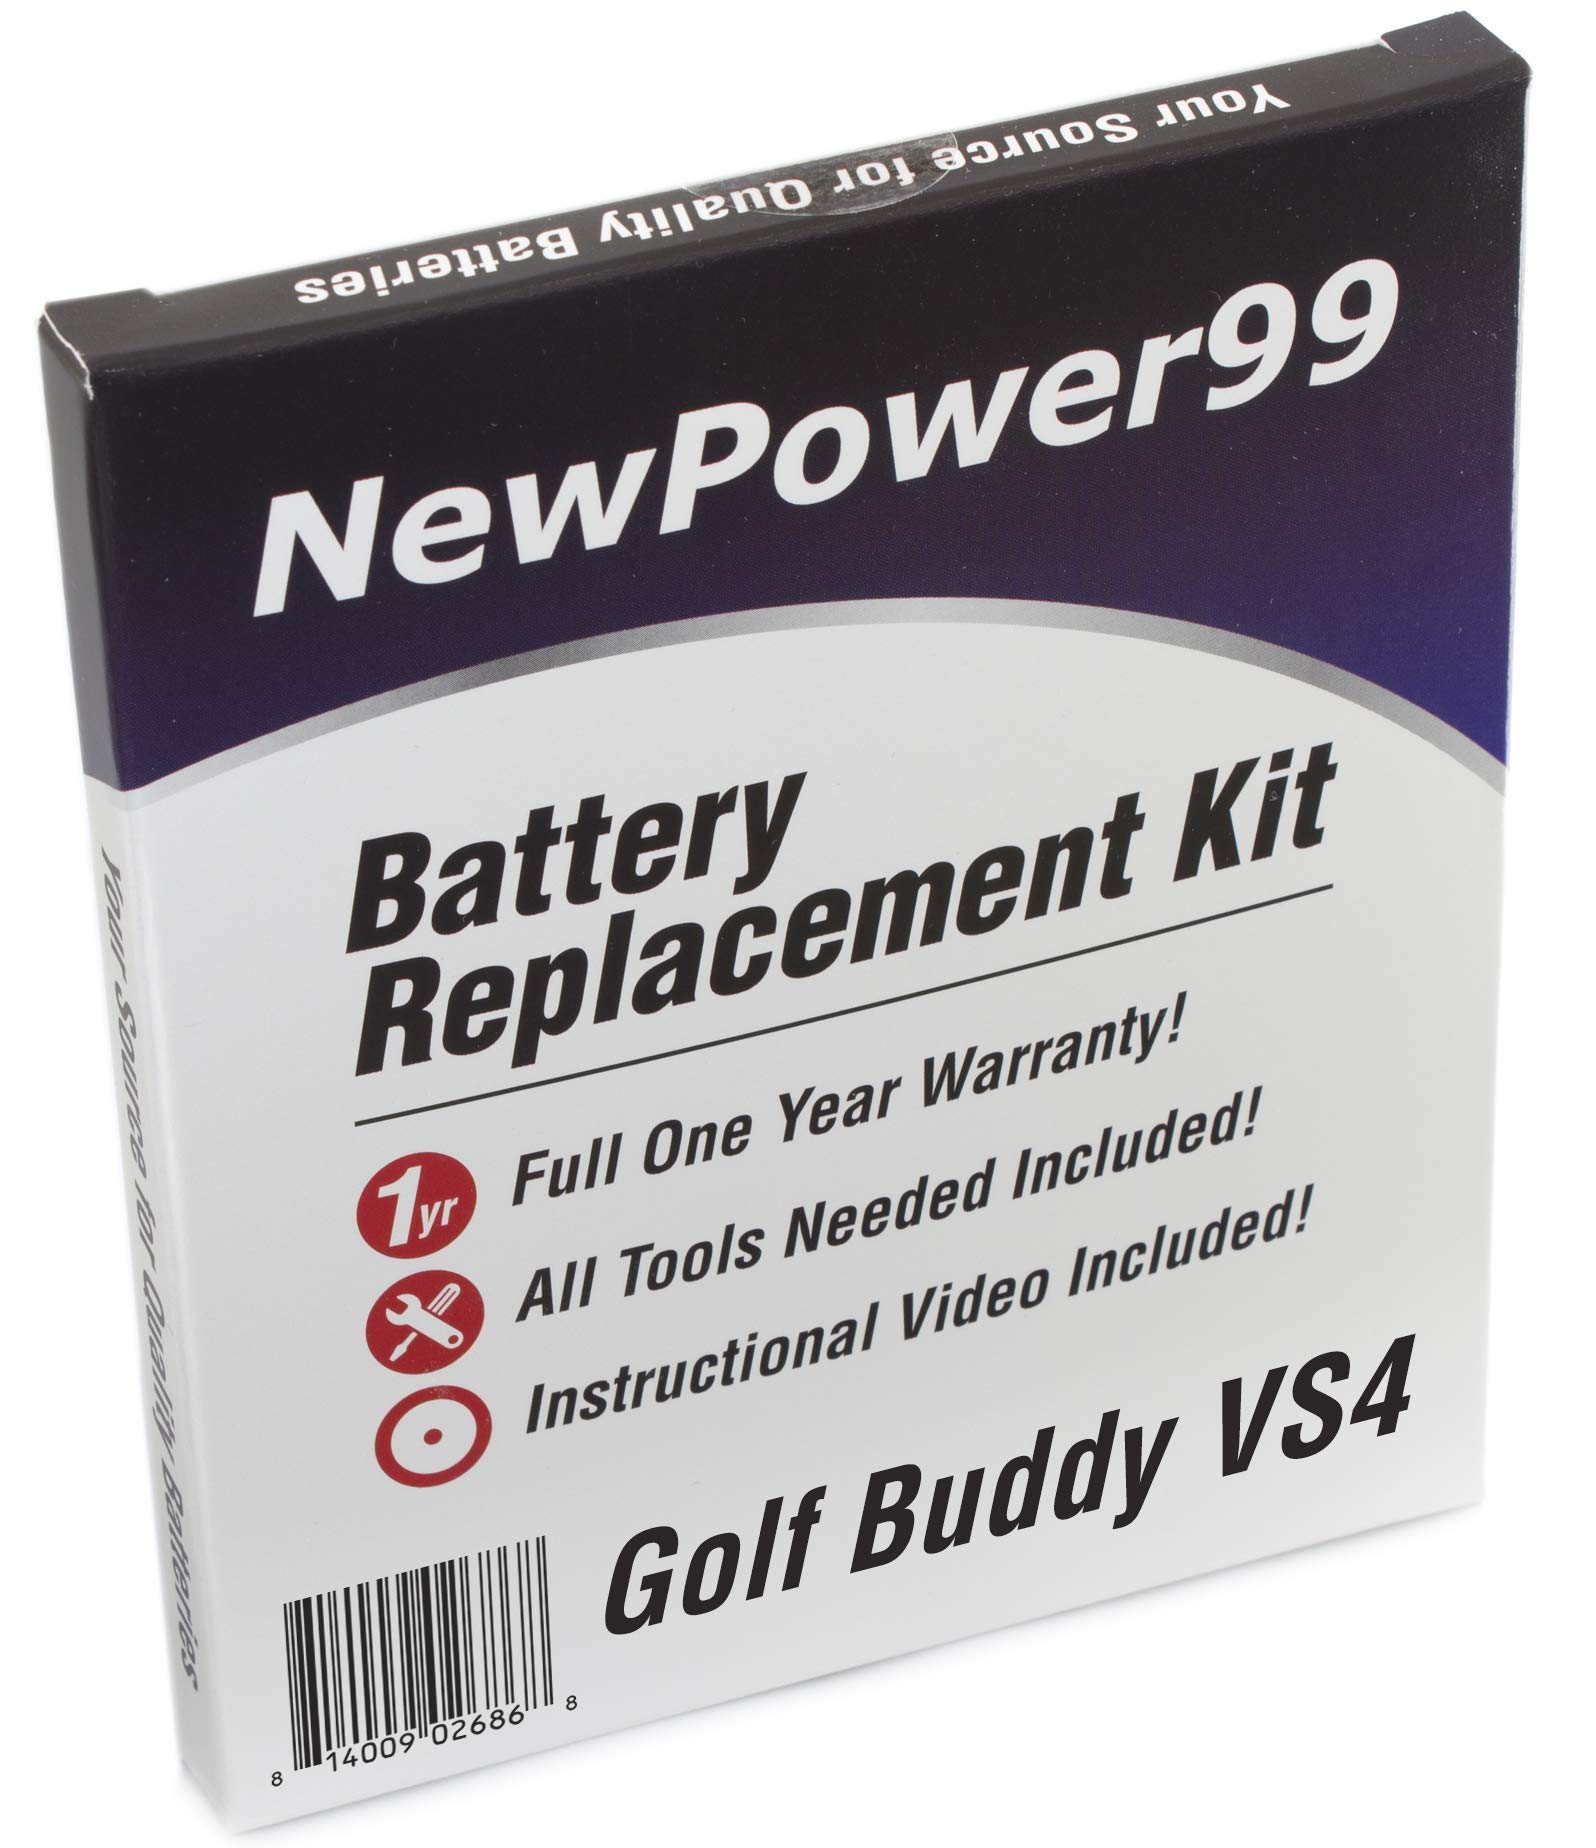 NewPower99 Battery Replacement Kit for GolfBuddy VS4 with Installation Video, Tools, and Extended Life Battery. by NewPower99